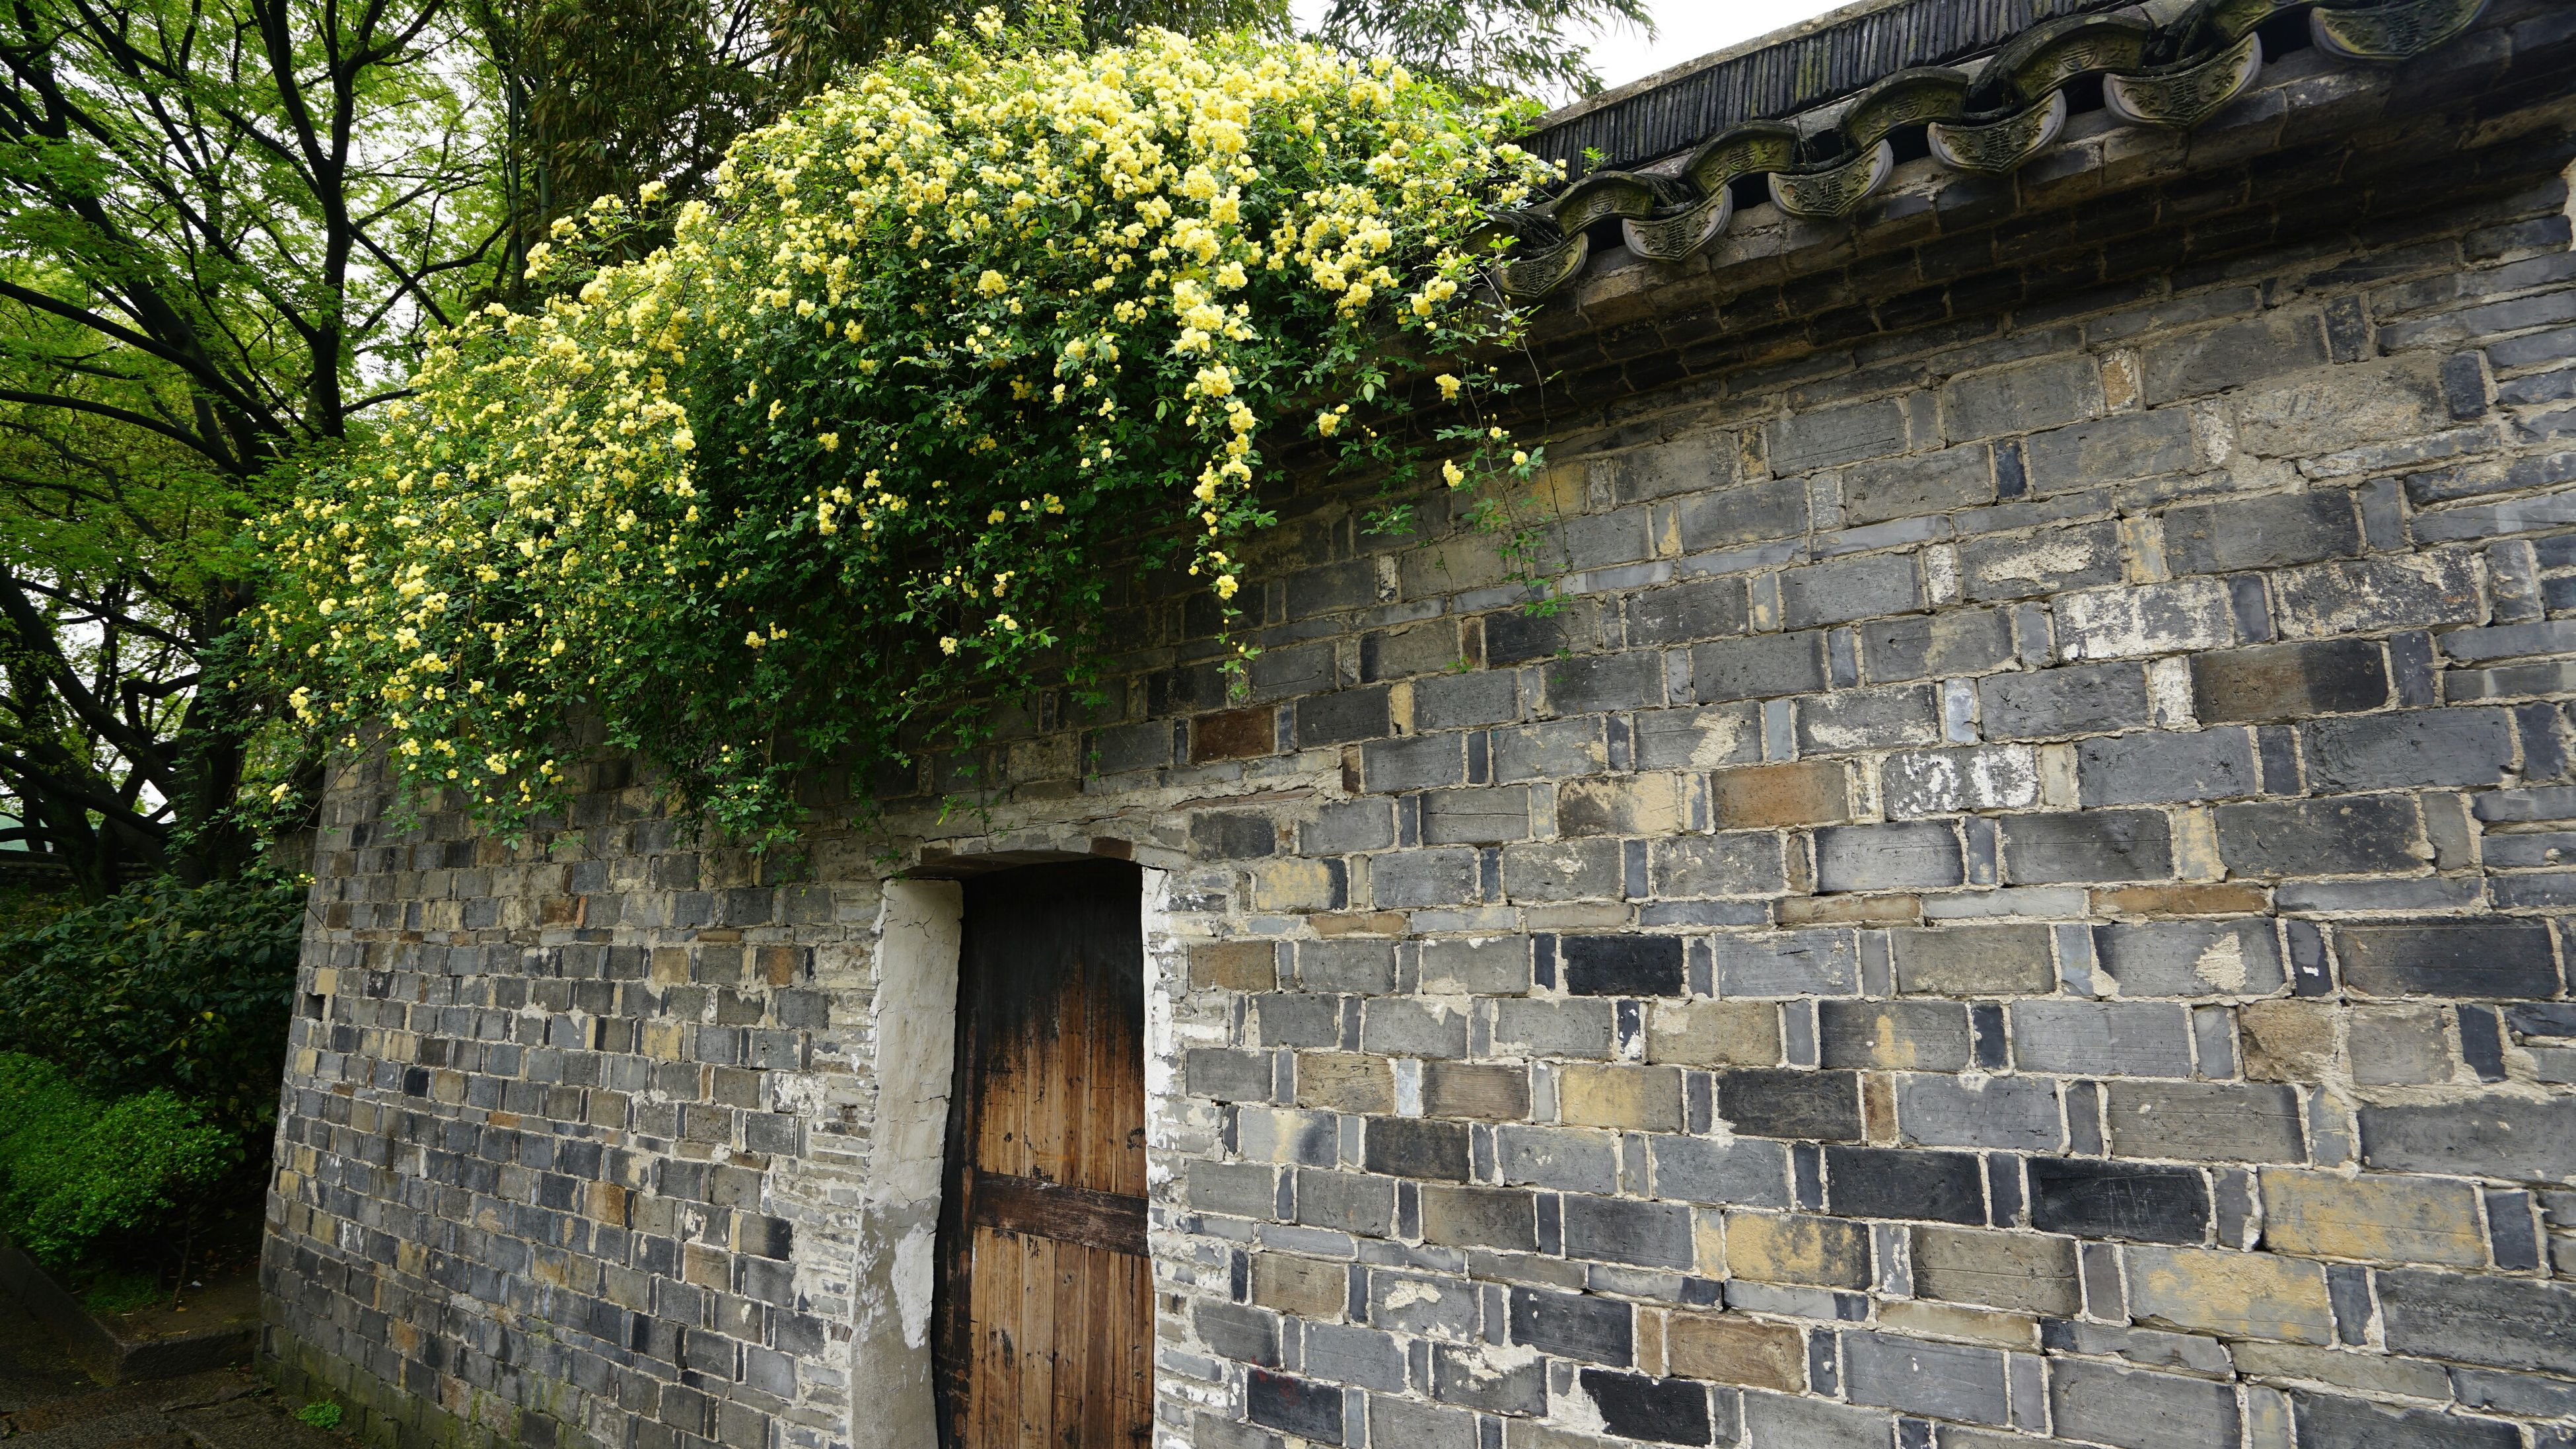 architecture, built structure, building exterior, stone wall, tree, old, growth, plant, brick wall, house, wall - building feature, green color, ivy, day, outdoors, no people, stone material, history, low angle view, building